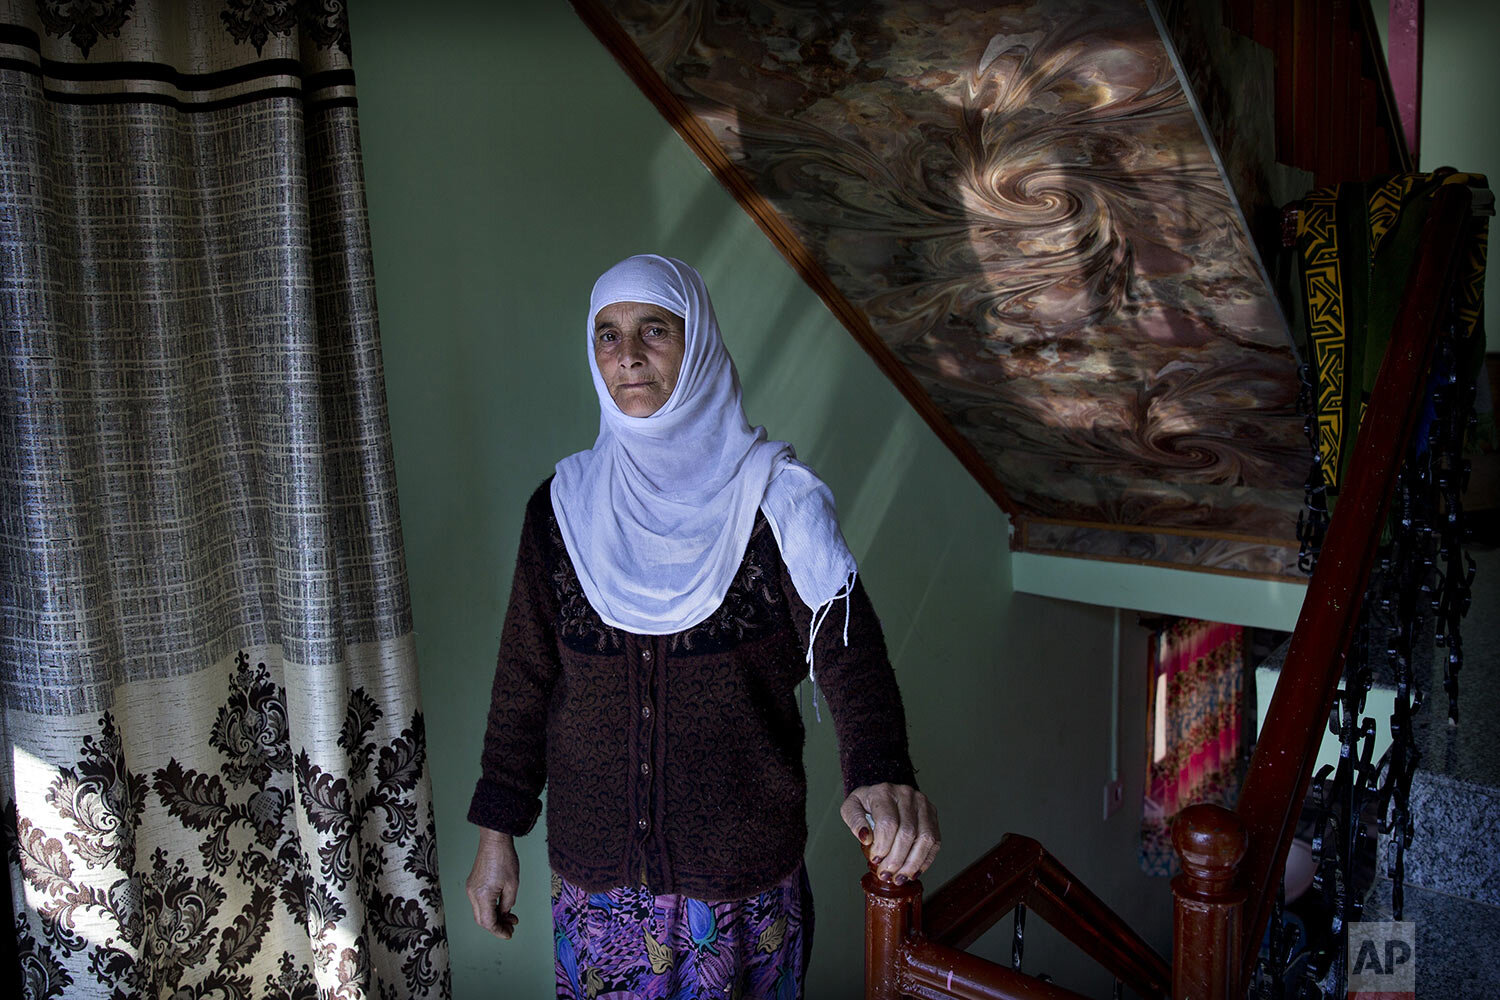 Biba Malla stands for a photograph inside her house on the outskirts of Srinagar, Indian-controlled Kashmir, Friday, Oct. 14, 2019. (AP Photo/ Dar Yasin)